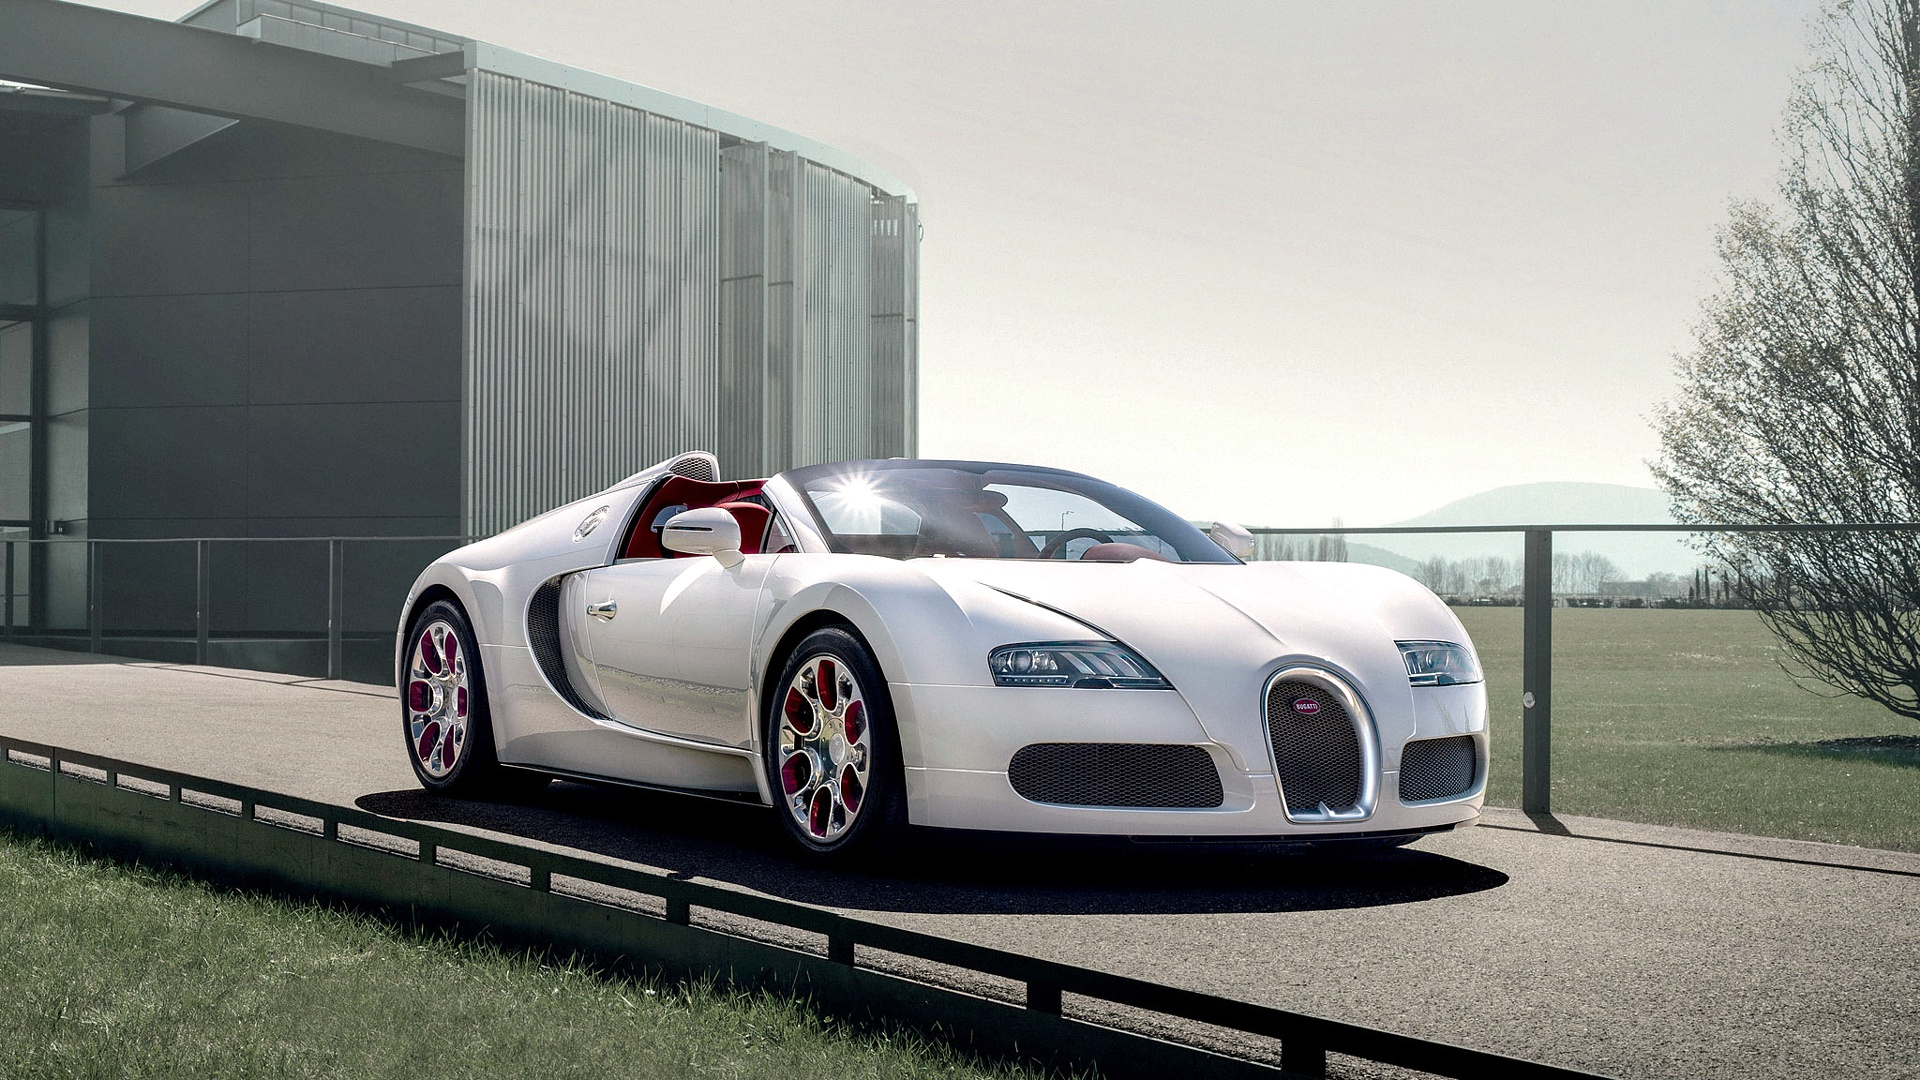 Bugatti Veyron Hd Wallpapers Wallpaper 1920x1080